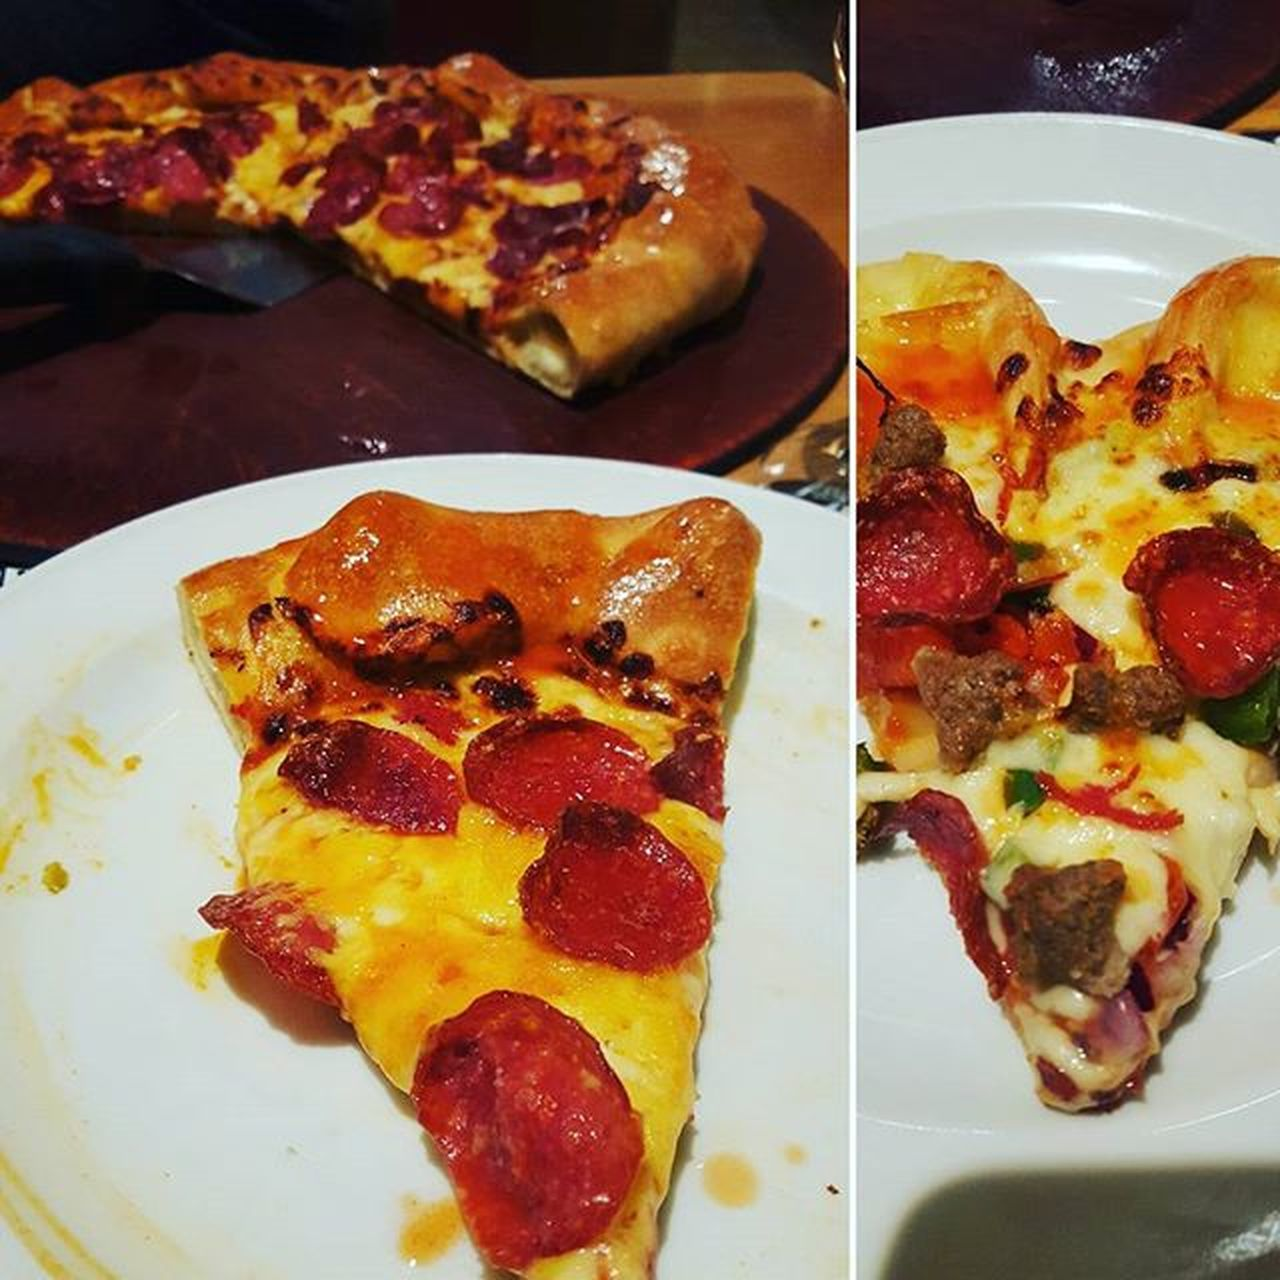 Last refeed meal for the day! Pizza Hut delights with friends 🍕 ❤ Pizza Cheesy Pizzahut Cheesycrust Pepperoni Friends Diningout Foodgasm Pizzapizza Foodporn Foodblogger Pizzalover Blogger_LU Carbloading Refuel Fyet Munchdown Munchies Cheddar Mozarella Love Delight  Spicy Hotsauce Tabasco tabascosauce @tabasco @pizzahut